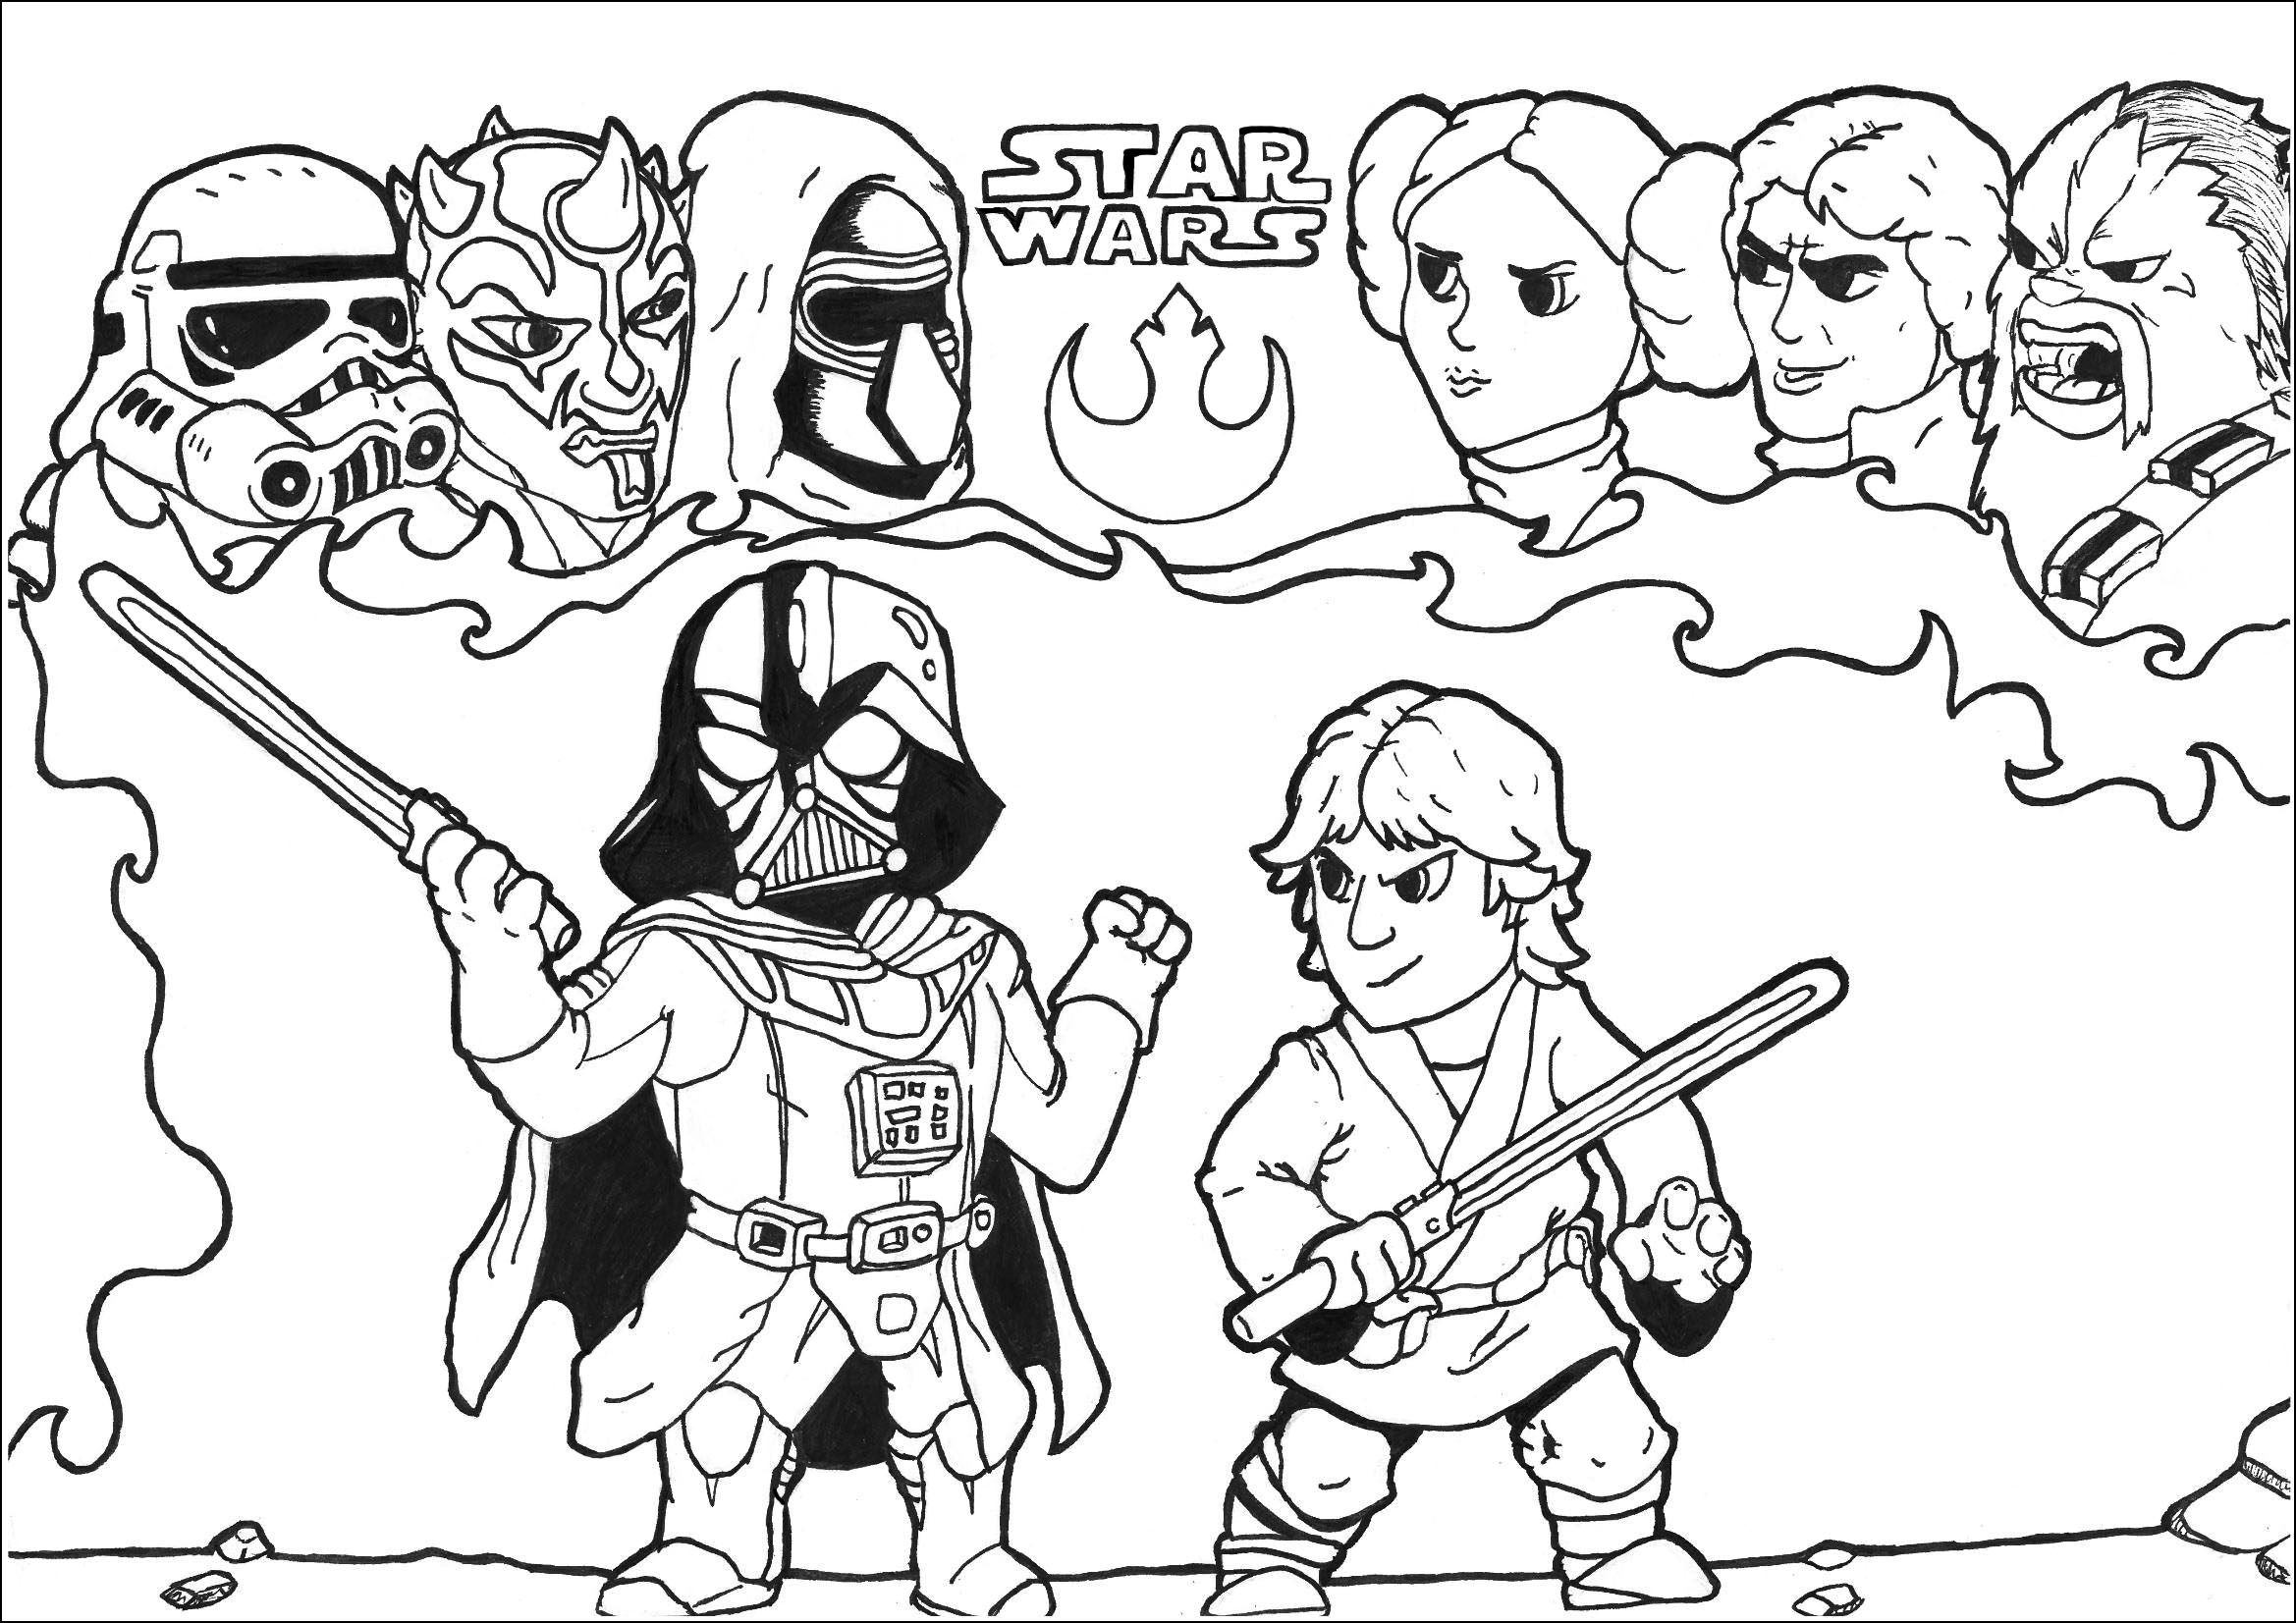 Star wars free to color for kids - Star Wars Kids Coloring ...